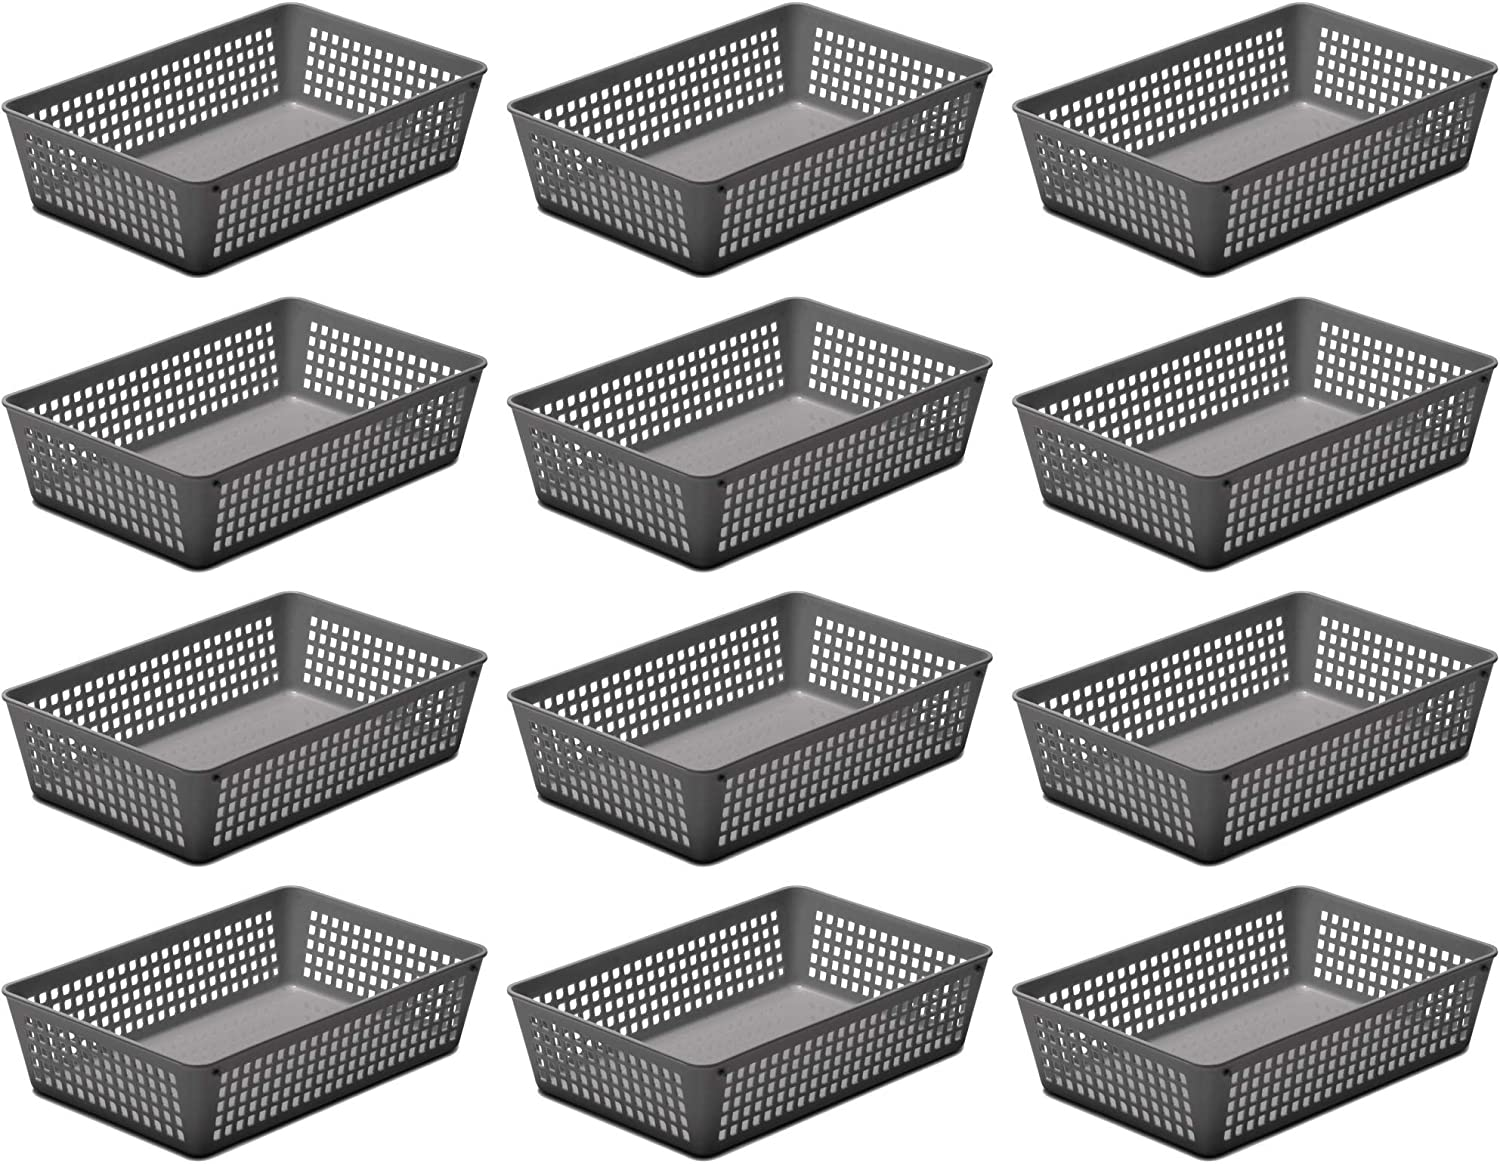 Ybmhome Plastic Colorful Storage Supply Basket for Office Drawer, Shelf Desktop, Home Junk Drawers, Kitchen Pantry Or Countertop - Bins Trays for Office Home and School Classrooms (12, Grey)